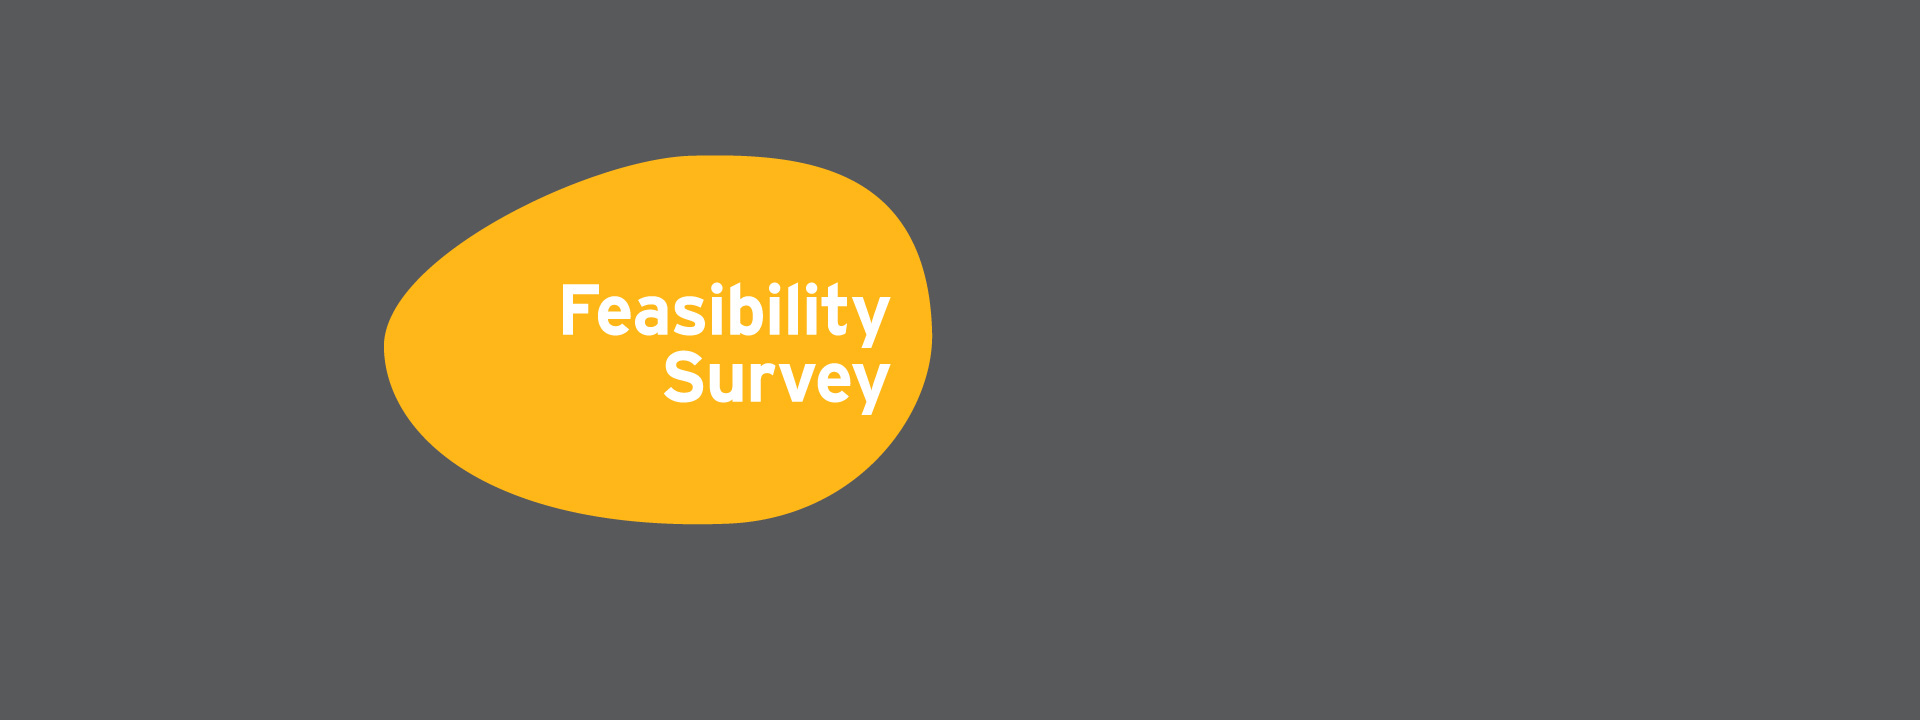 Feasibility Survey